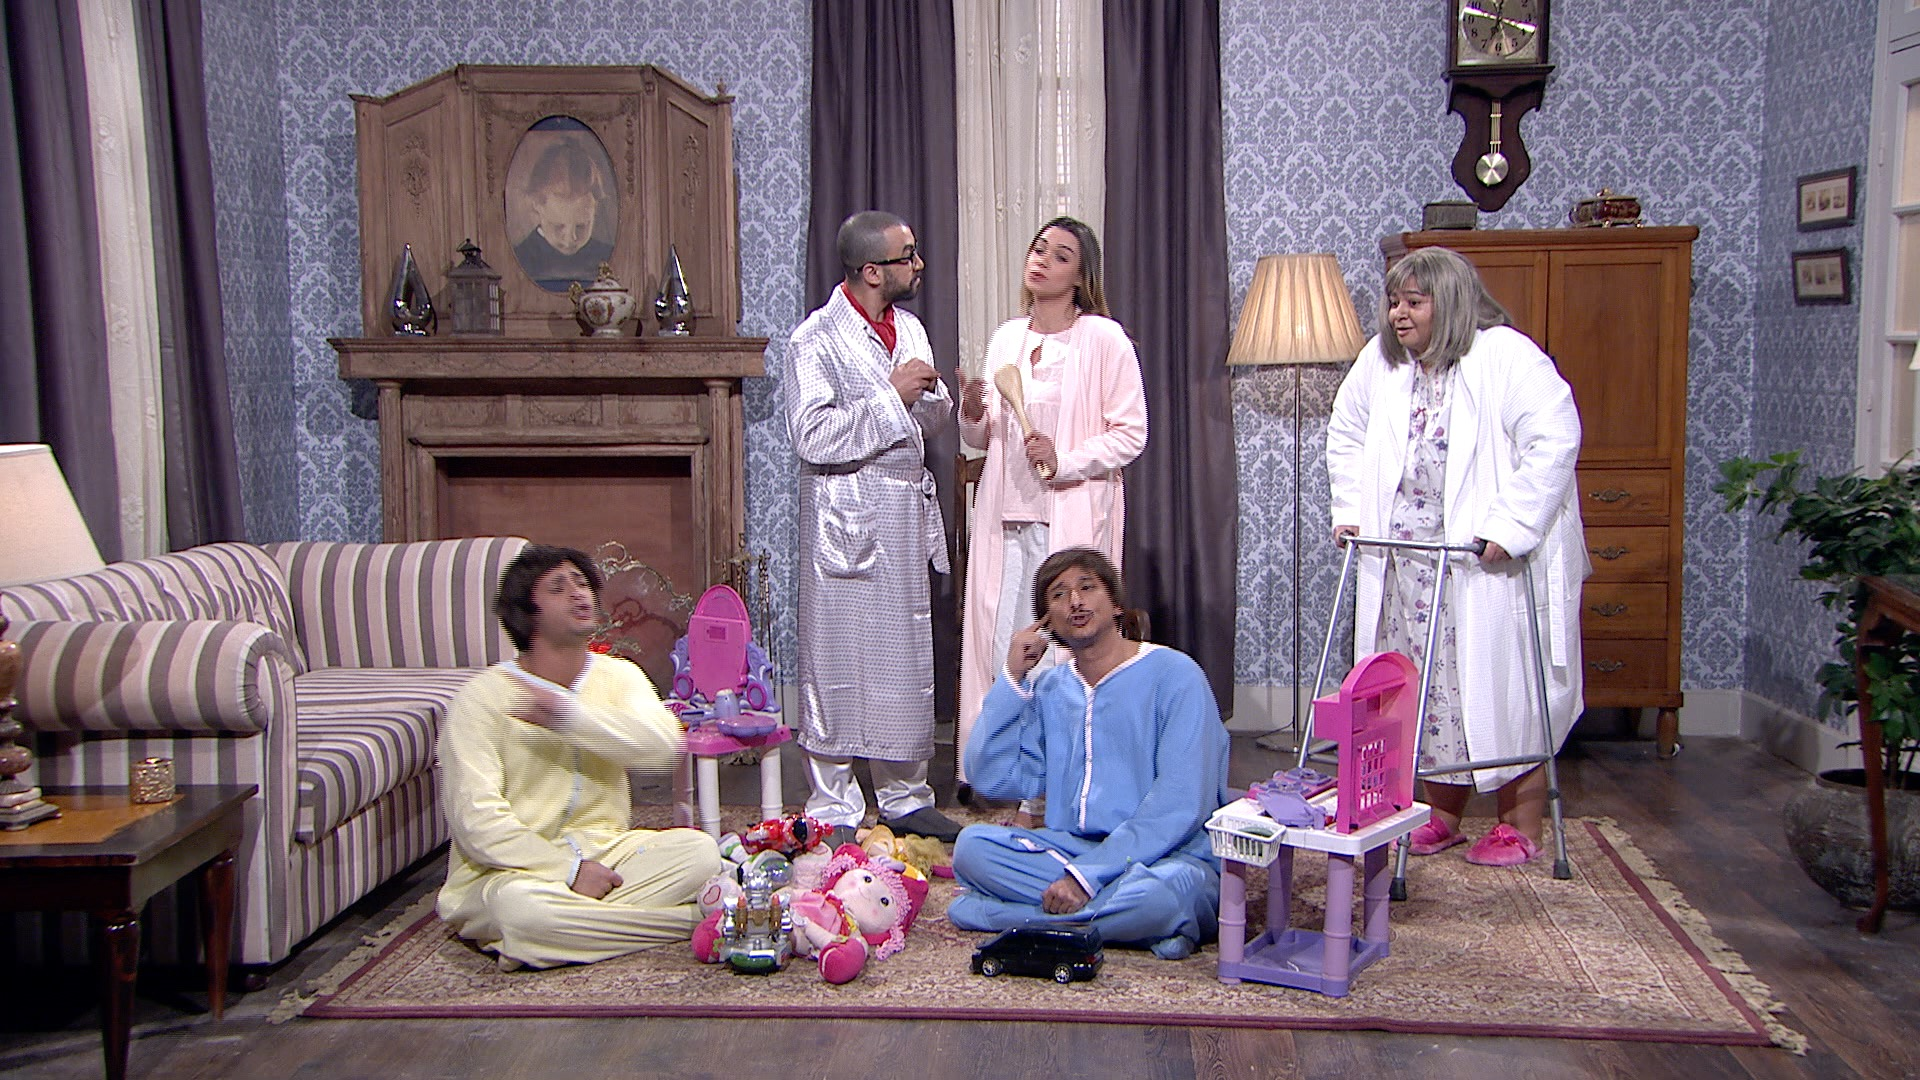 From Cairo, 'It's Saturday Night Live!' — without politics, sex or religion